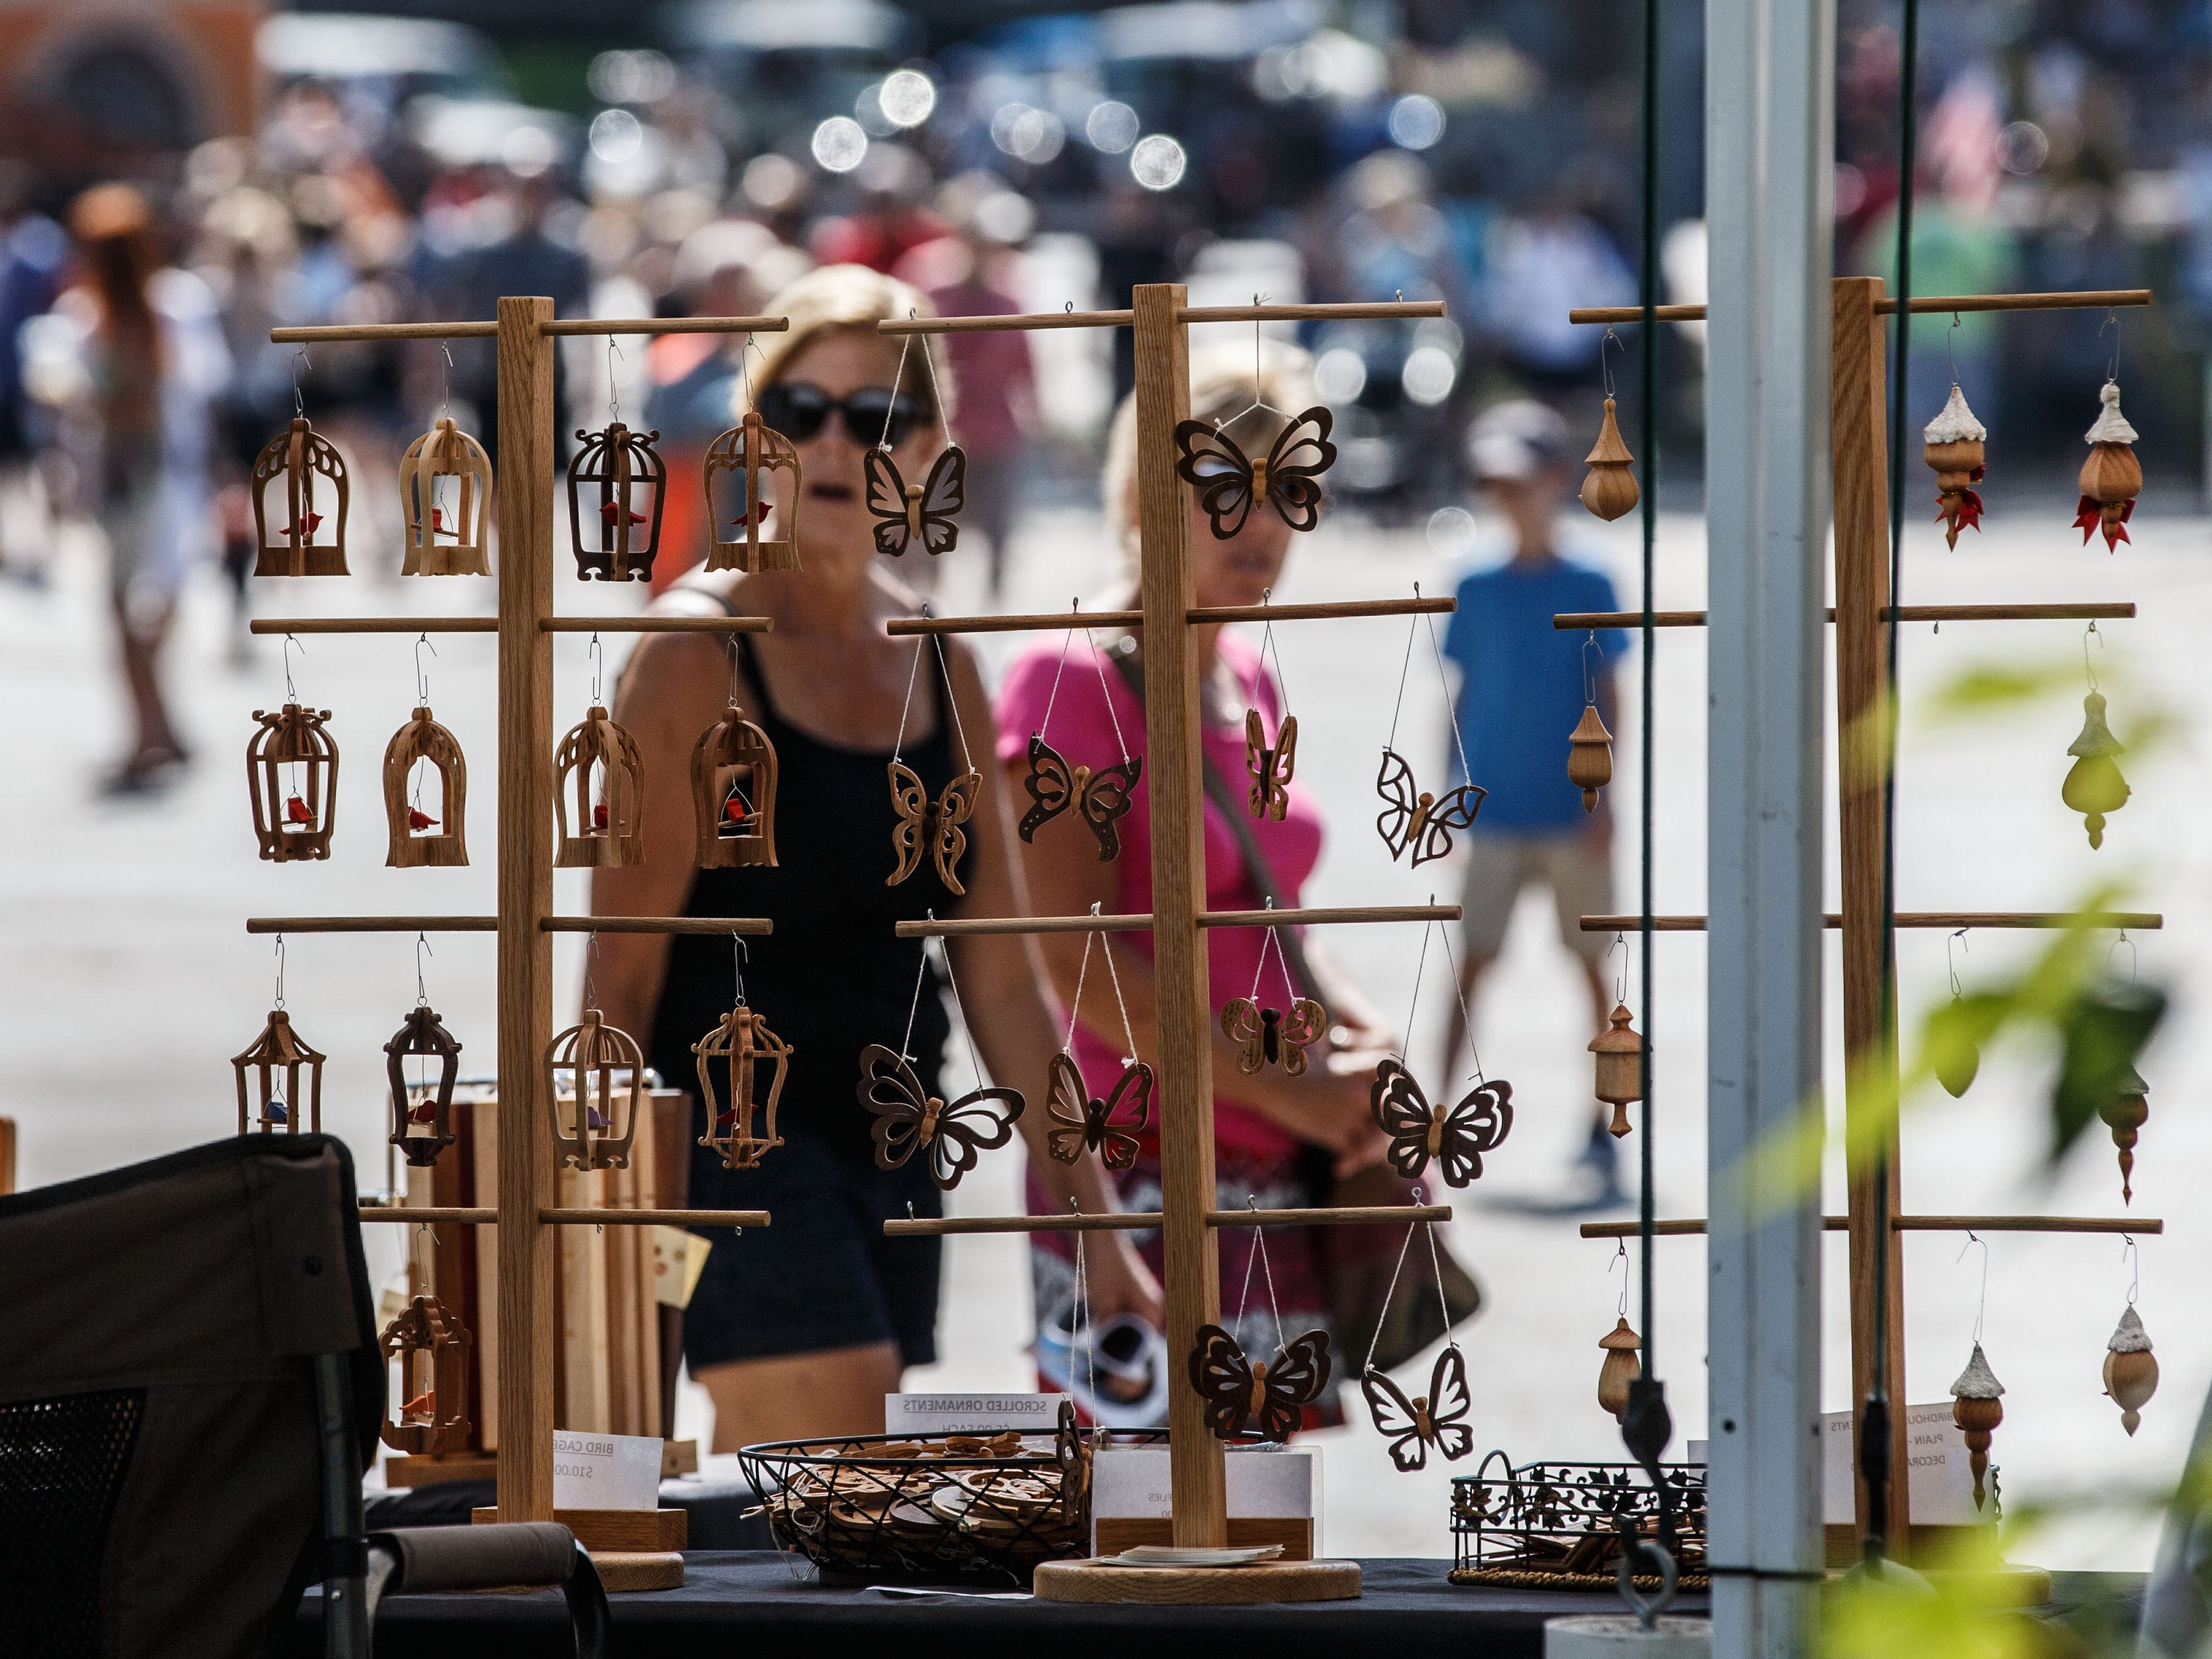 Visitors explore the Fine Arts Show behind the Cedarburg Cultural Center during the 46th annual Wine & Harvest Festival in downtown Cedarburg on Sunday, Sept. 16, 2018. The free two-day family-oriented arts and crafts event features homegrown produce, artisan foods, award-winning wines of Cedar Creek Winery, live music, children's activities and much more.